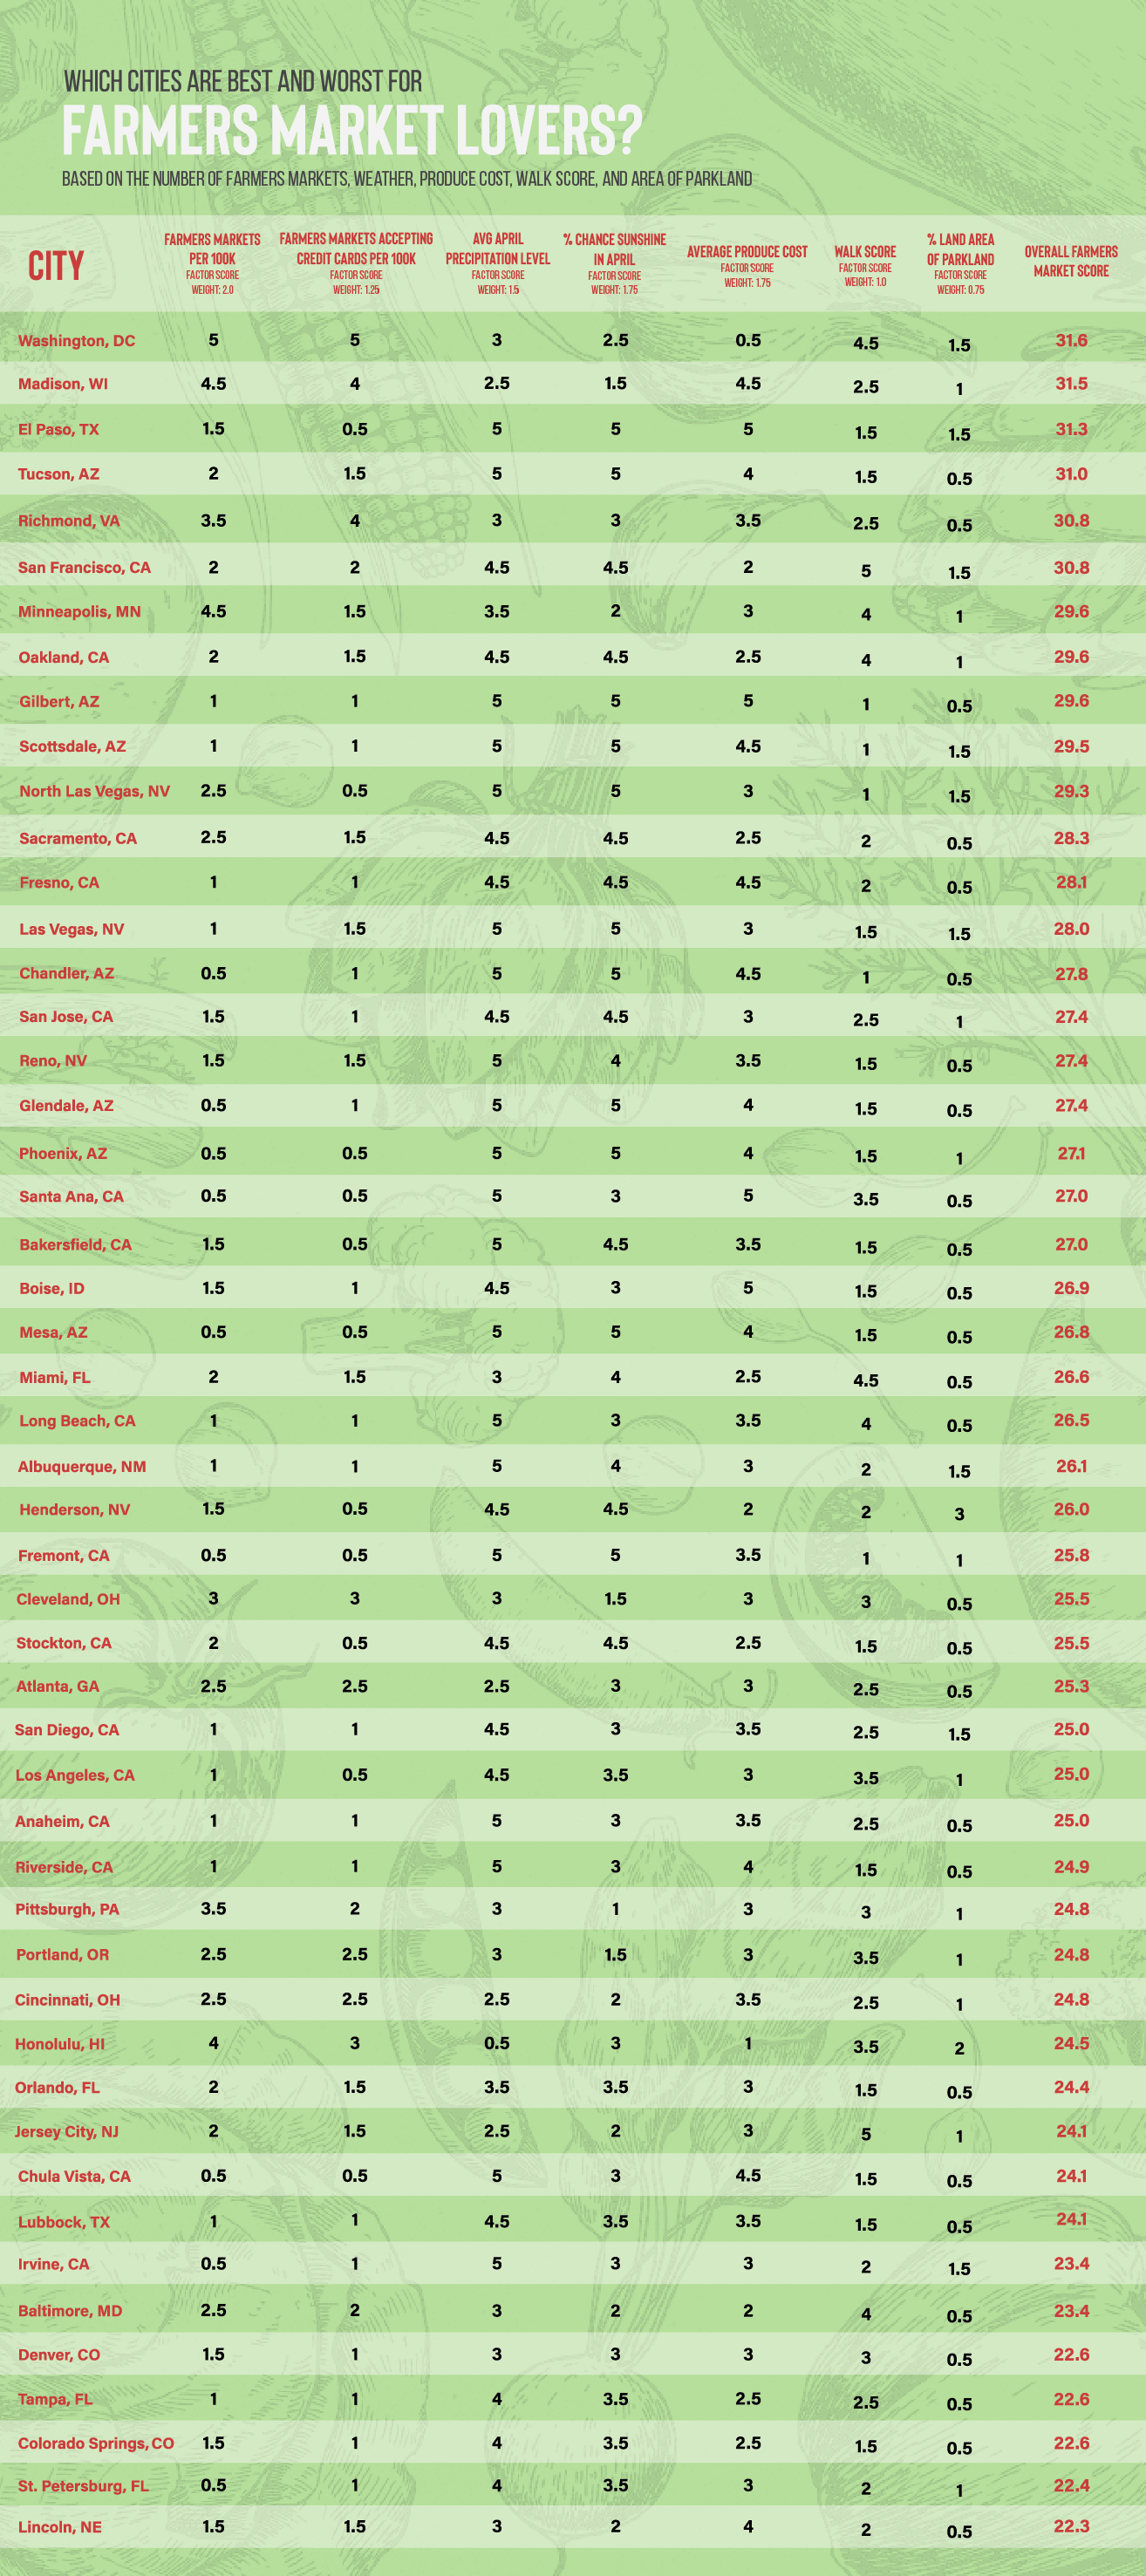 Best and worst cities for farmers markets - chart